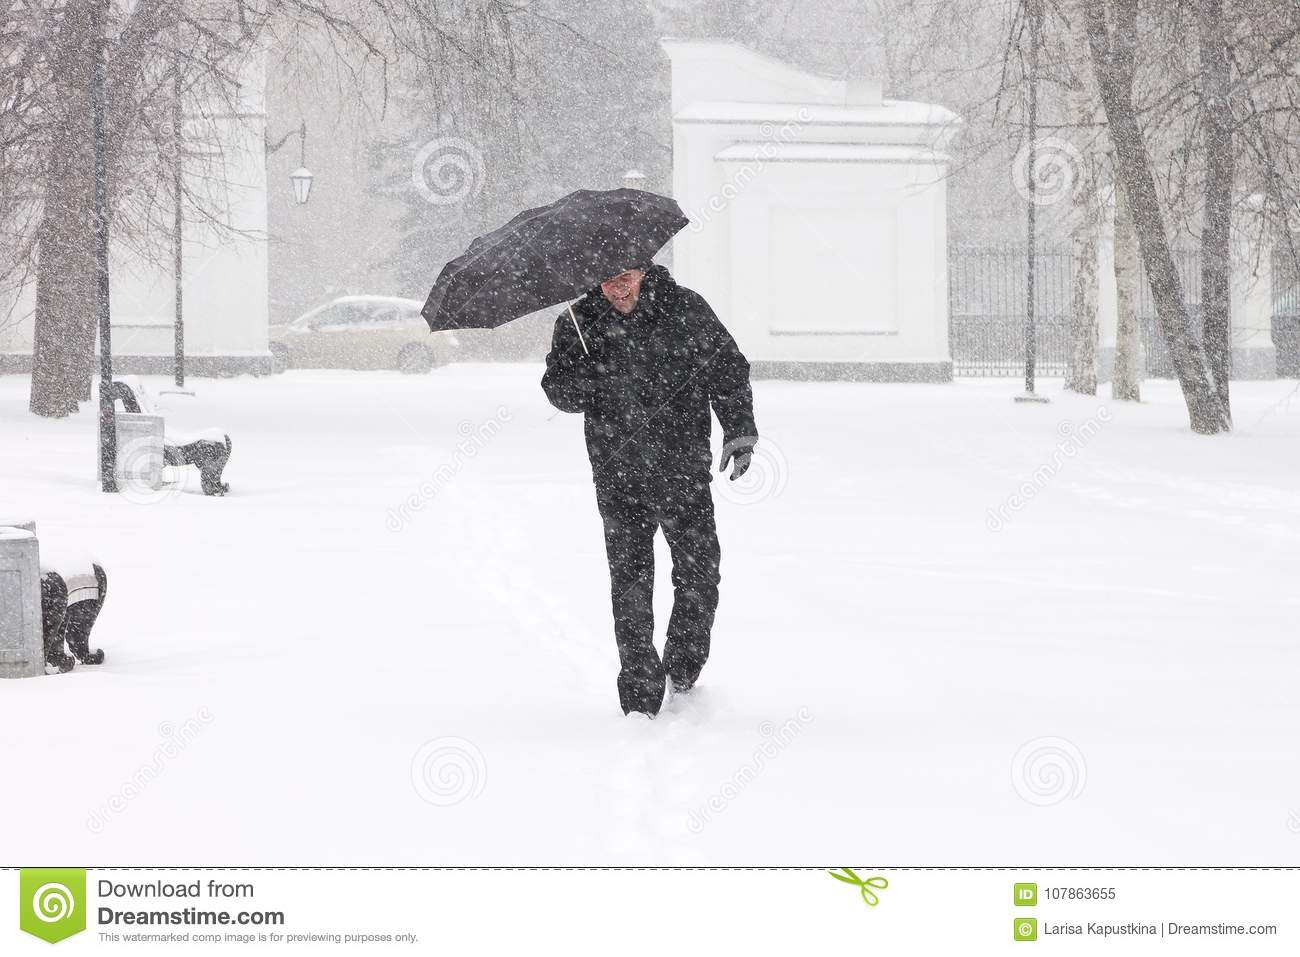 Very bad weather in a city in winter: terrible heavy snowfall and blizzard. Male pedestrian hiding from the snow under umbrella